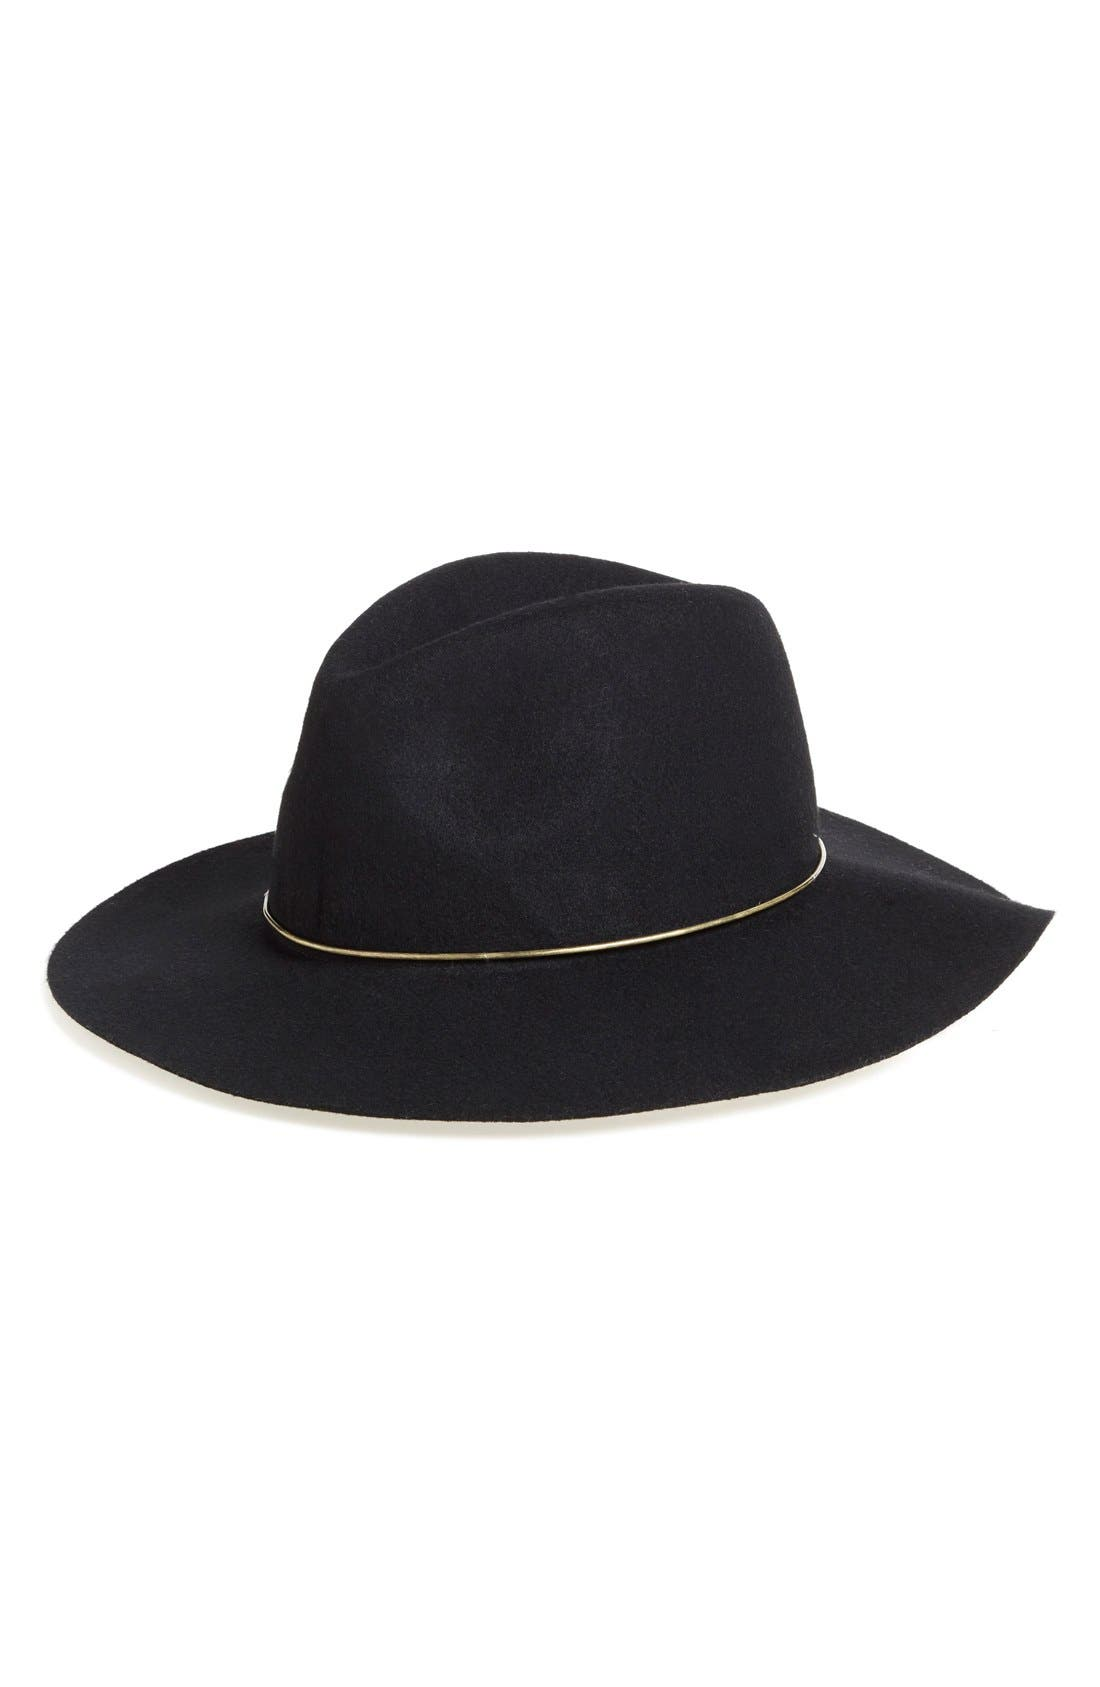 Alternate Image 1 Selected - BP. Metal Band Wide Brim Felted Wool Fedora